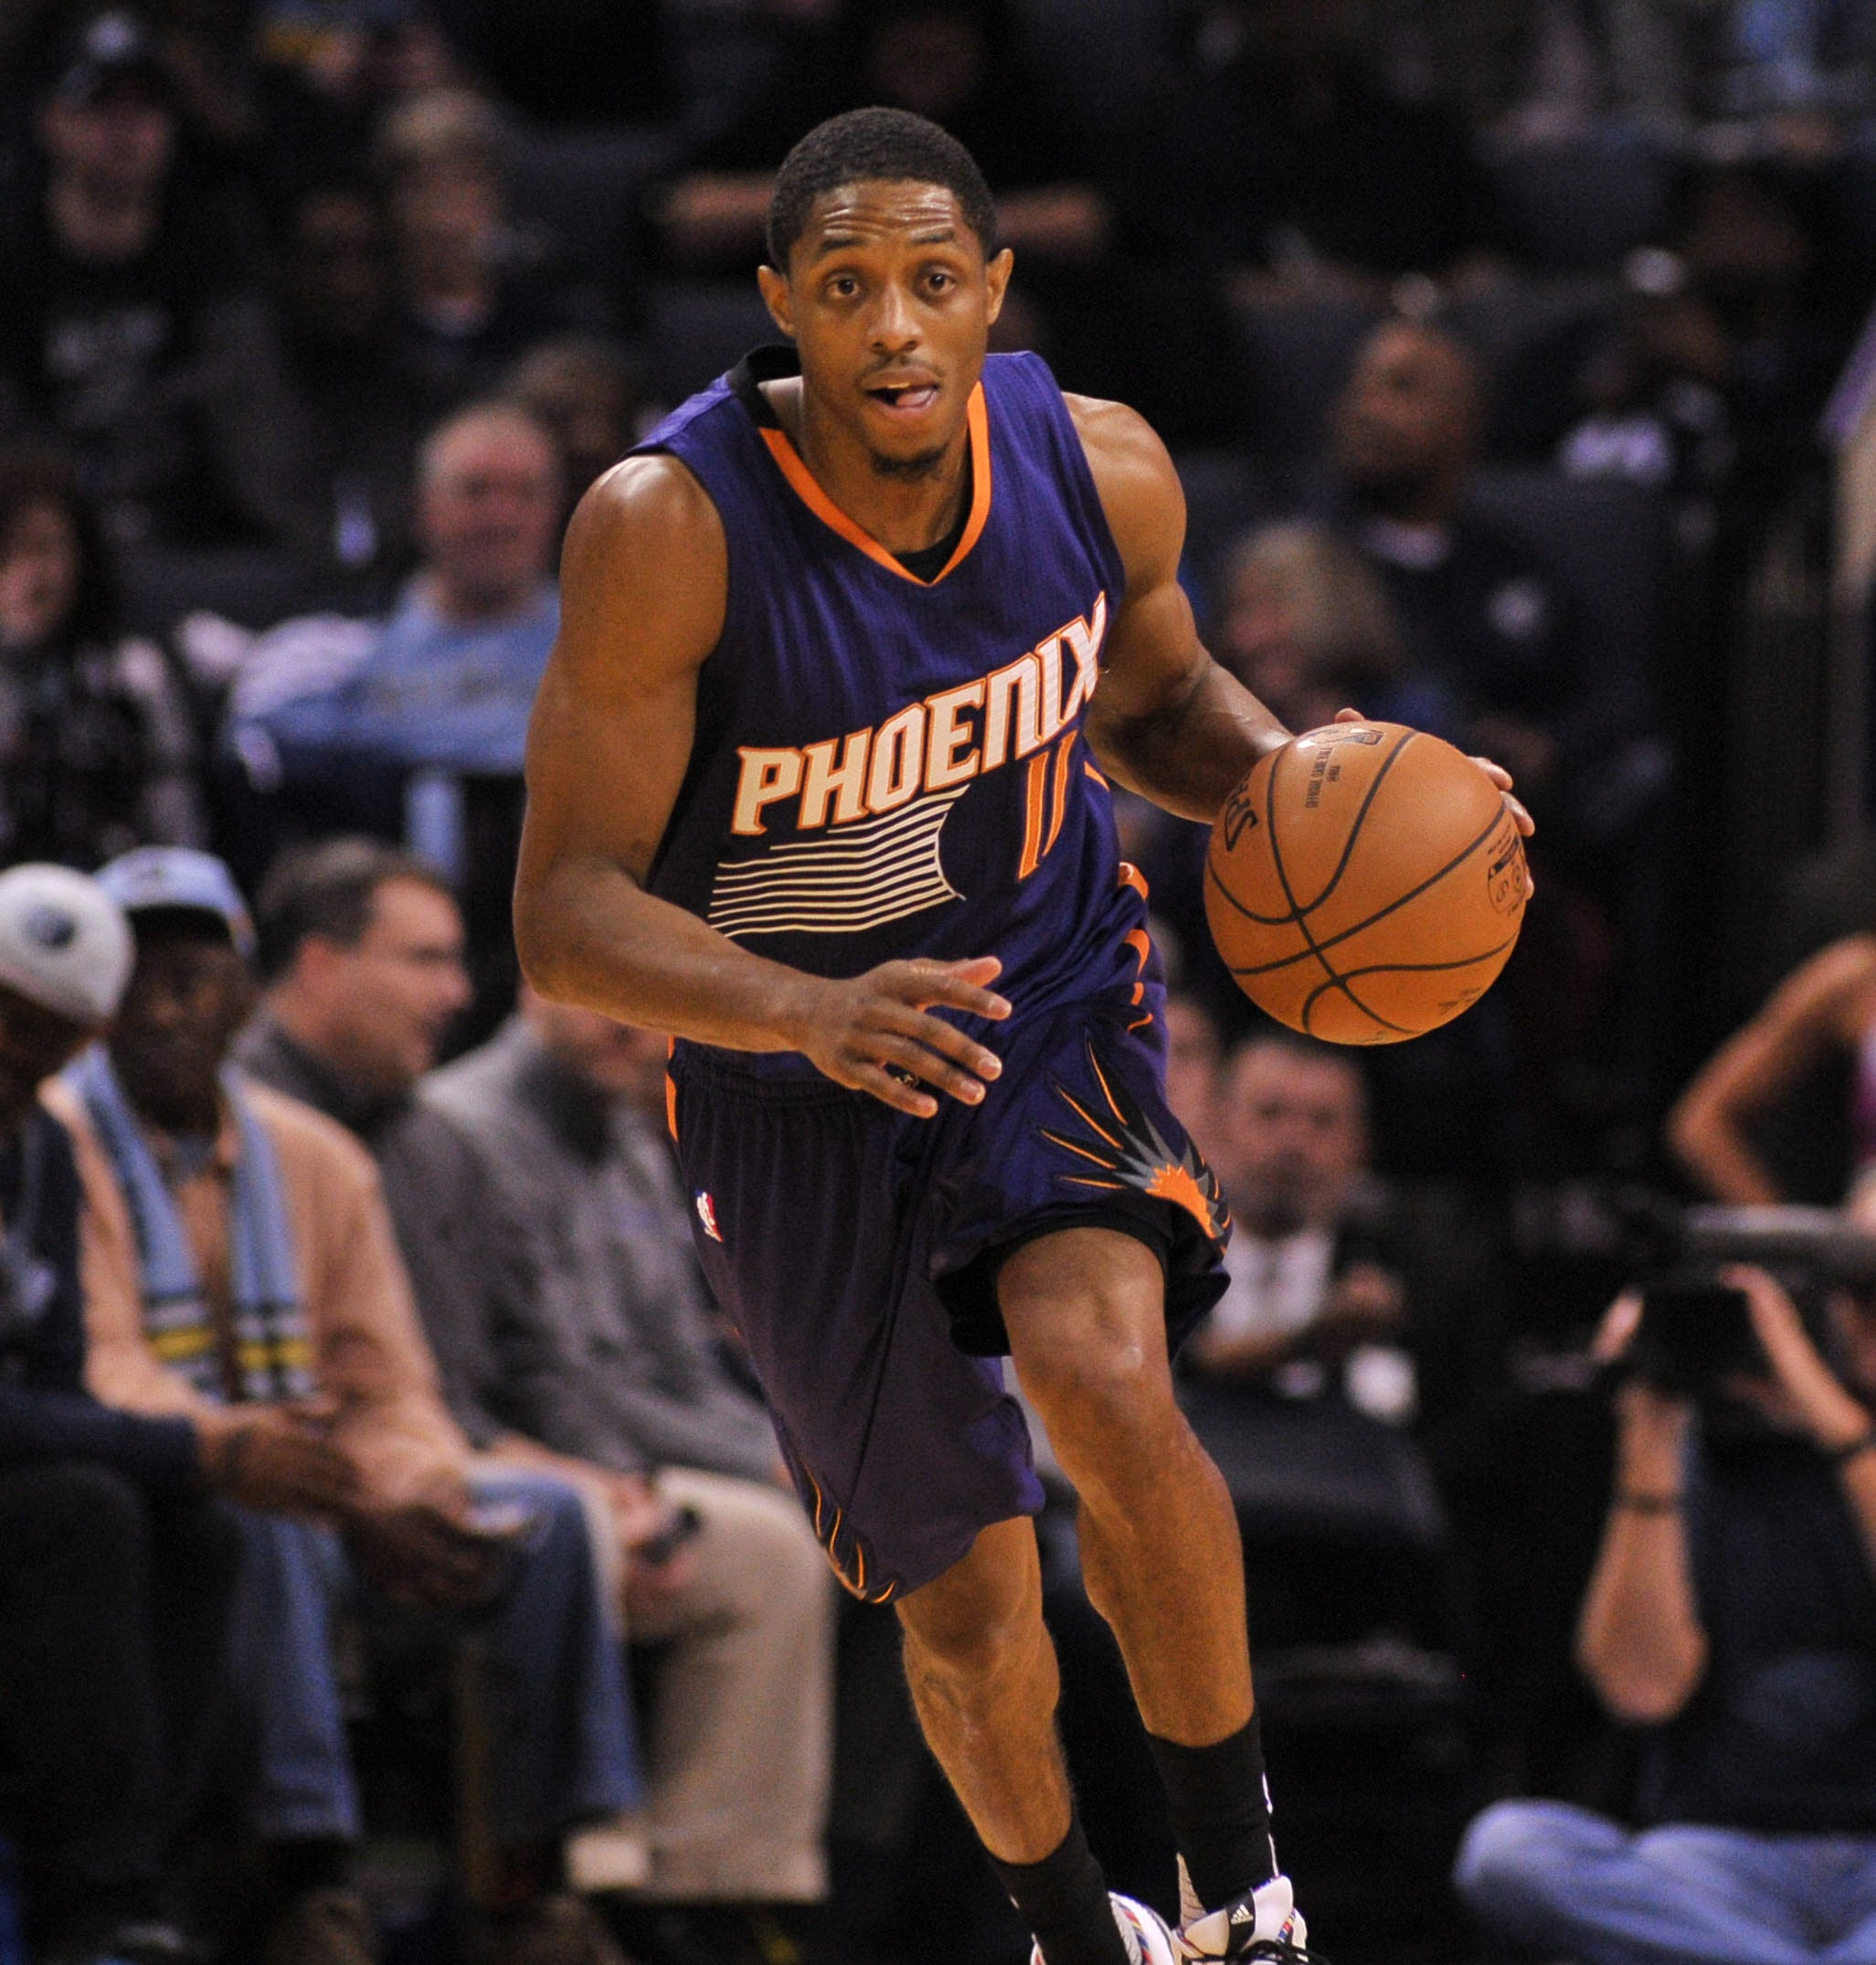 Suns guard Brandon Knight expected to miss season with torn ACL